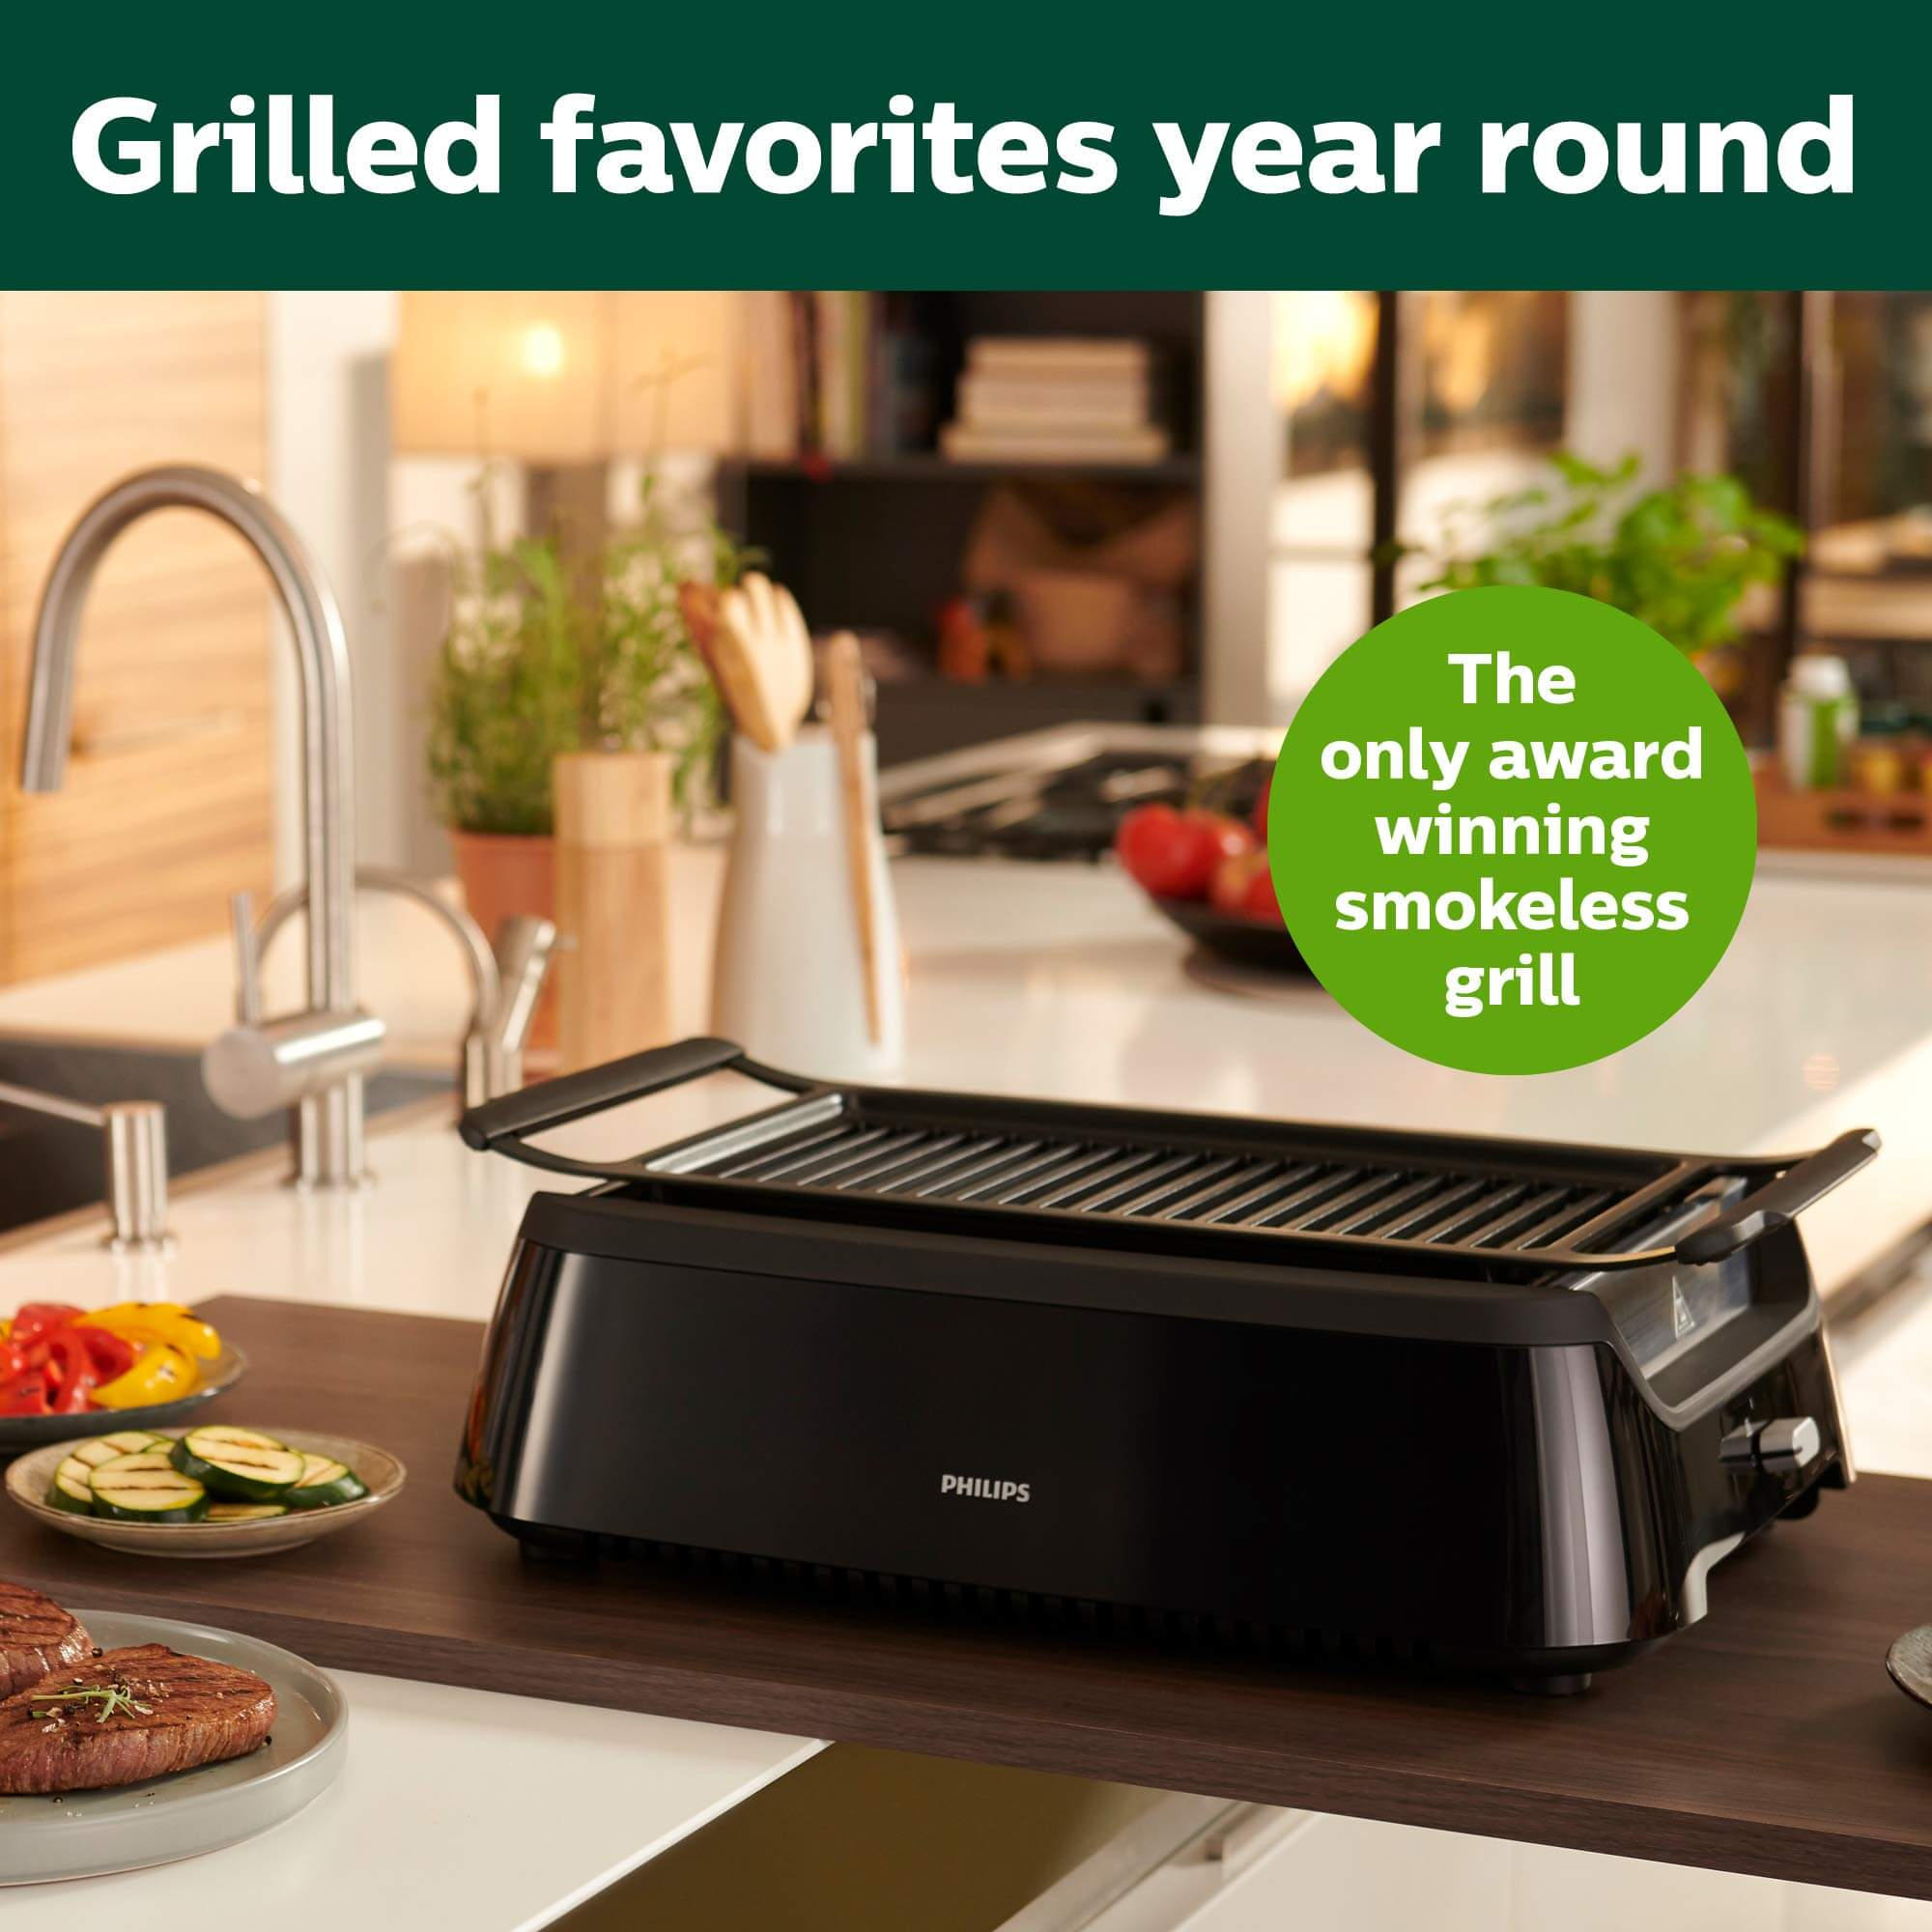 Philips Kitchen Appliances HD6371/94, philips smokeless indoor grill, philips indoor grill, philips smokeless grill, best electric grill indoor